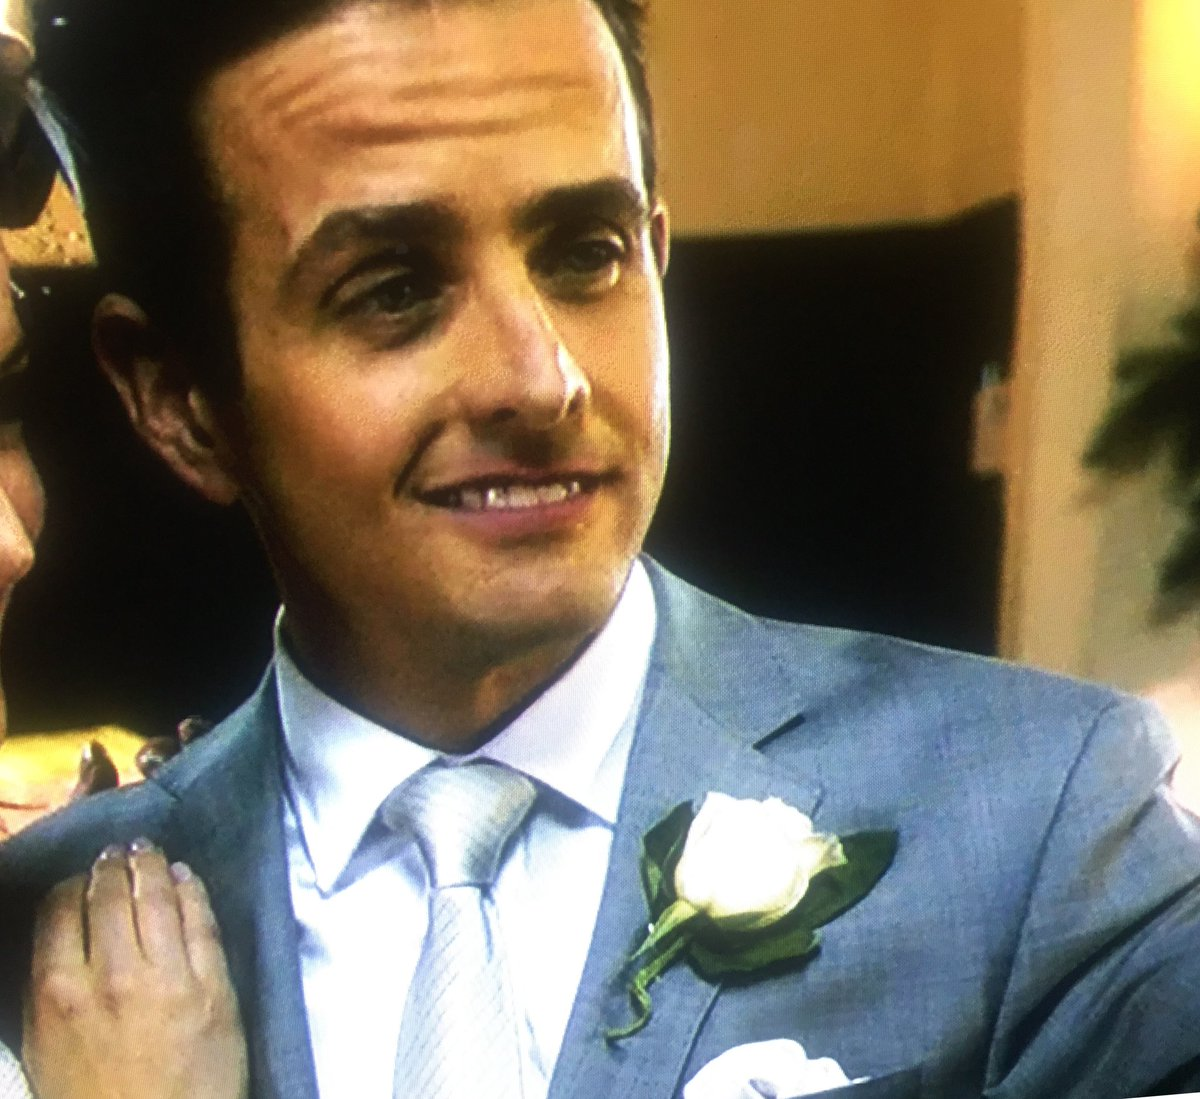 #HappyBirthdayJoeMac love turning on my TV and seeing your face! #NYE @joeymcintyre 💖